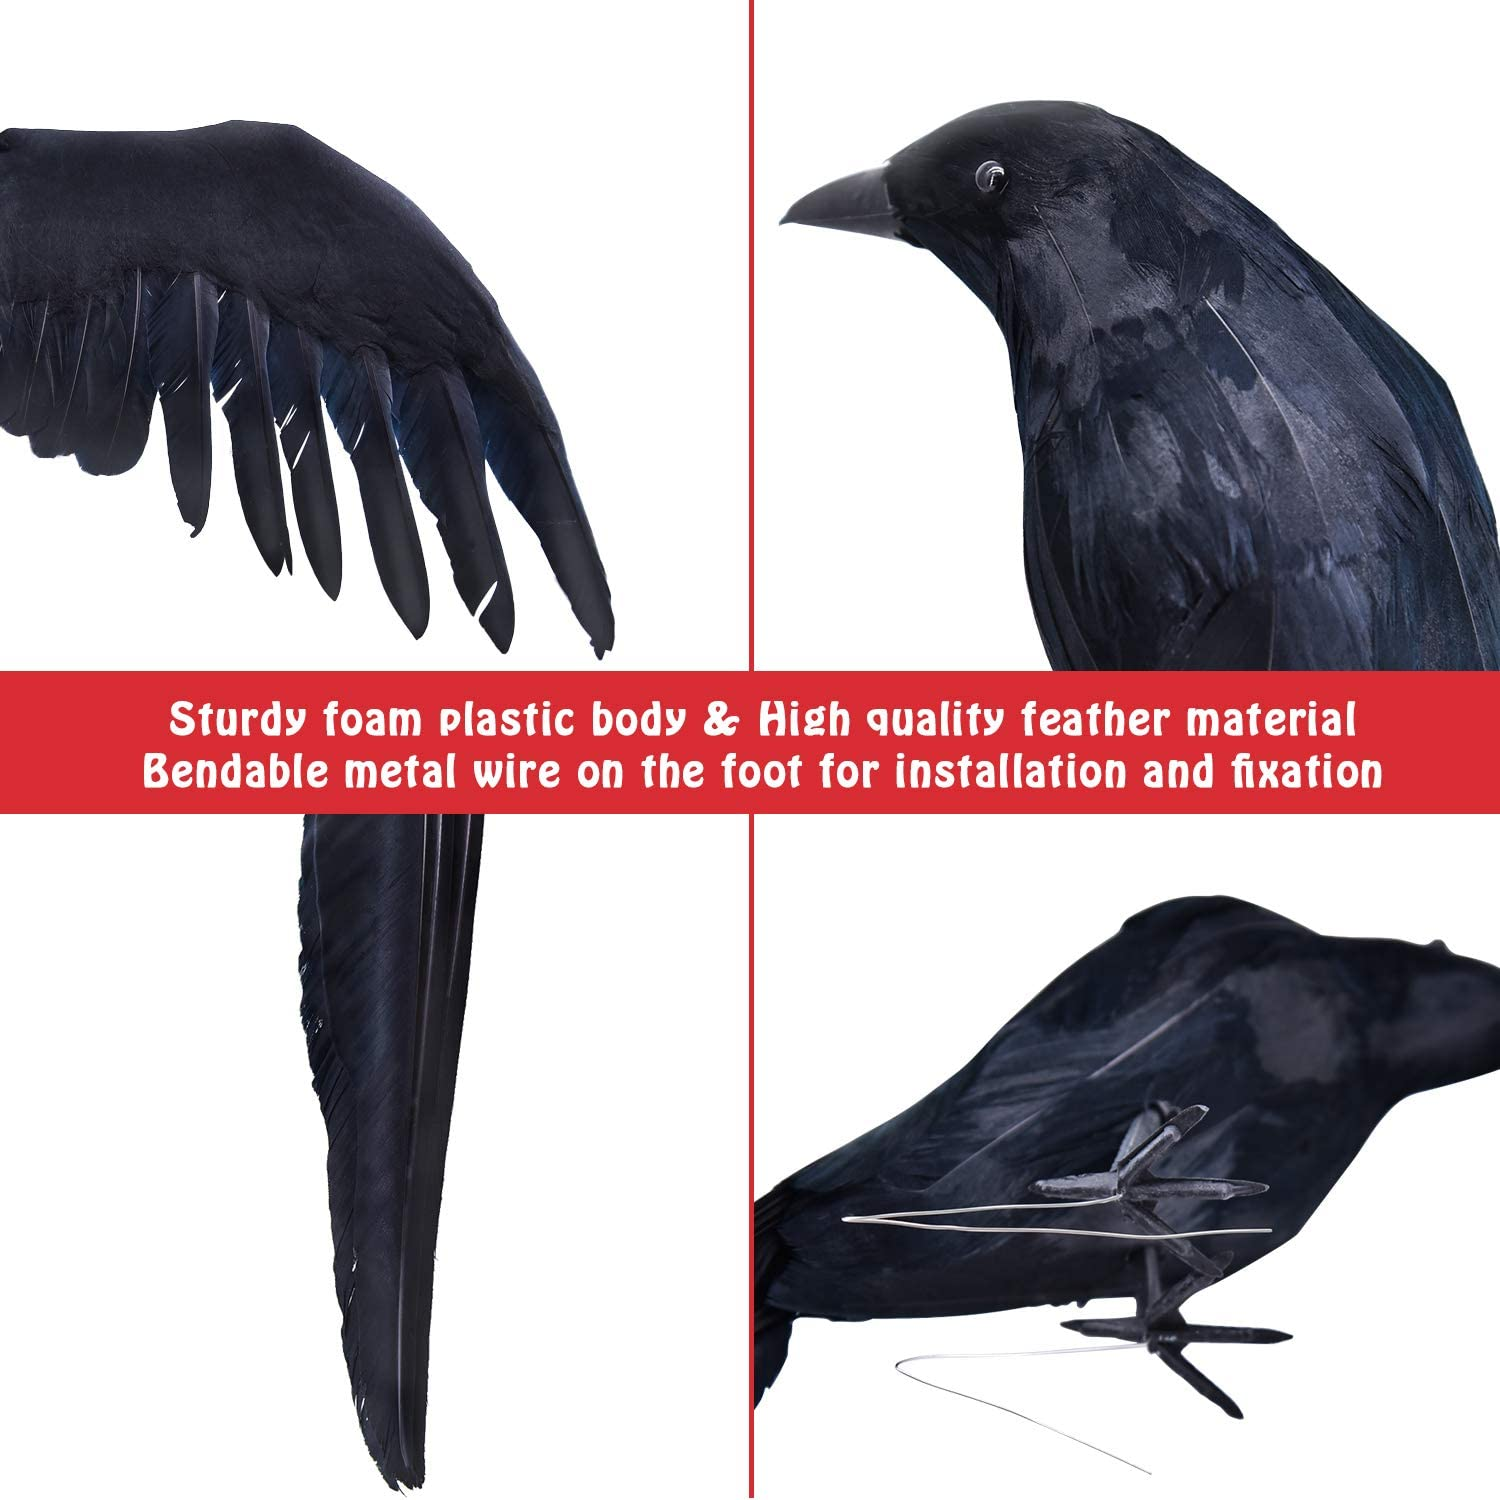 Large Handmade Crow Prop for Indoor Outdoor Ravens Birds Decoration 2-Pack 14.5inch Halloween Black Feathered Crows GEJRIO Halloween Realistic Crows